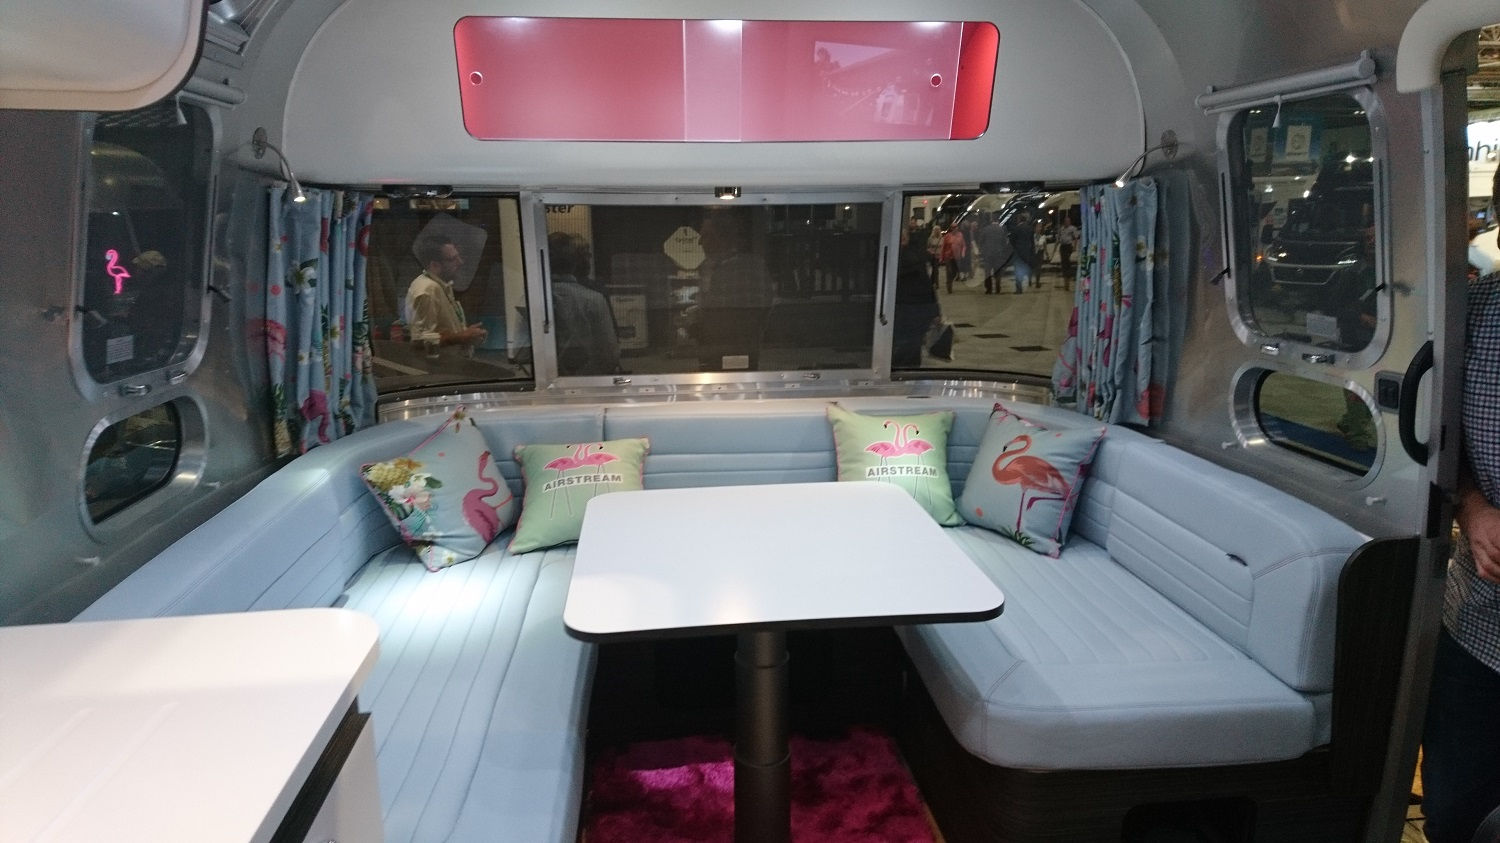 Airstream caravan interior